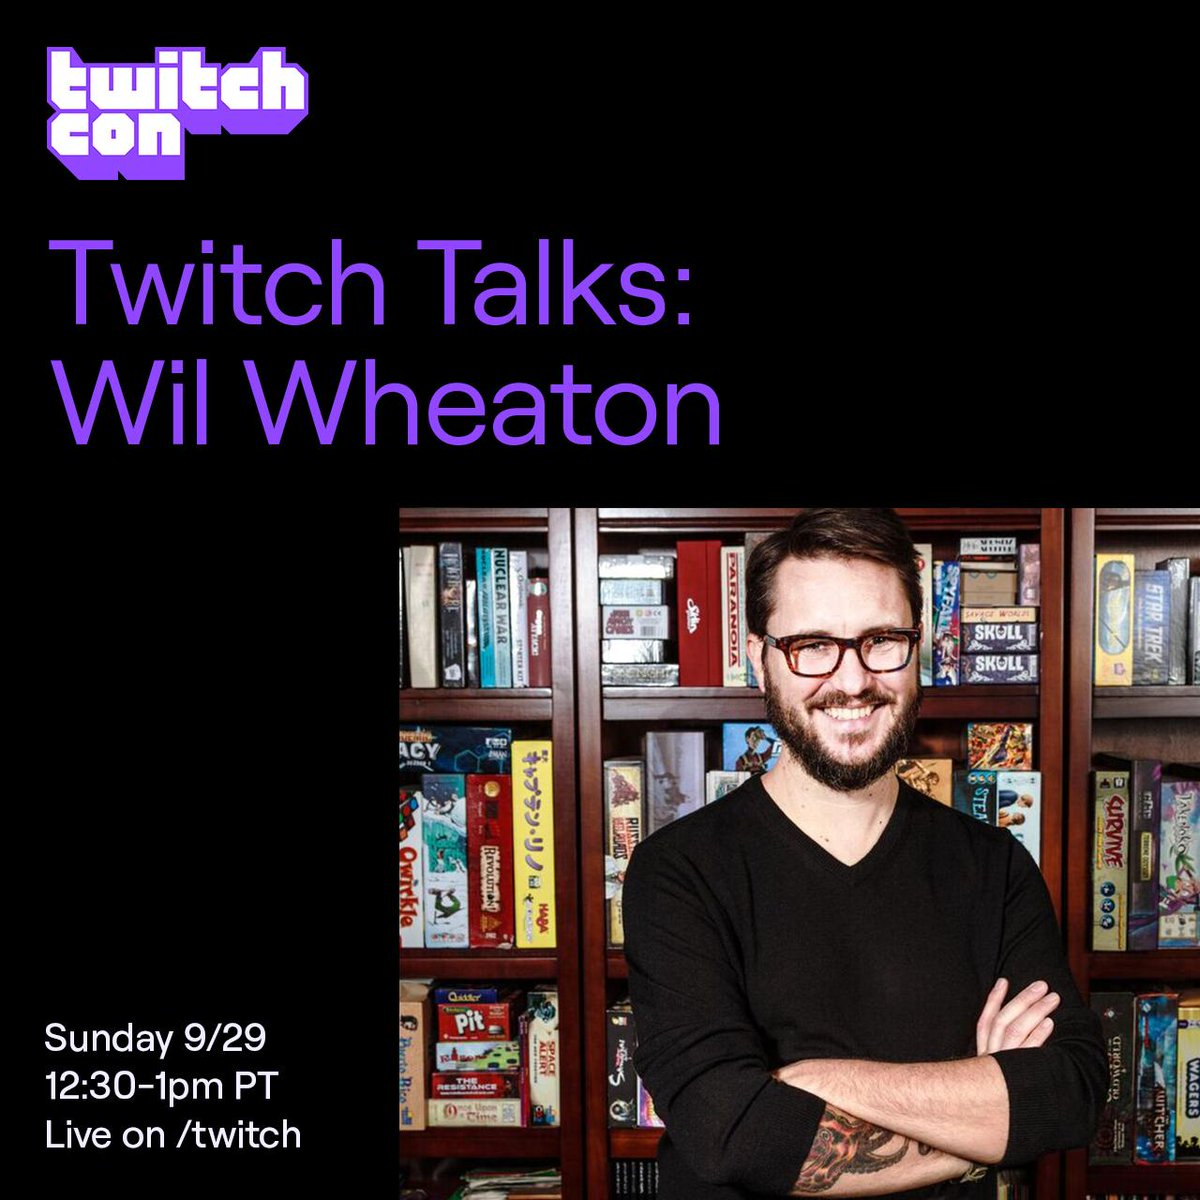 Life isnt an act, but it doesnt hurt to have an actor like Wil Wheaton to guide you through it. Watch and co-stream his Twitch Talk live from TwitchCon San Diego at 12.30pm PT: twitch.app.link/vovnYa518Z